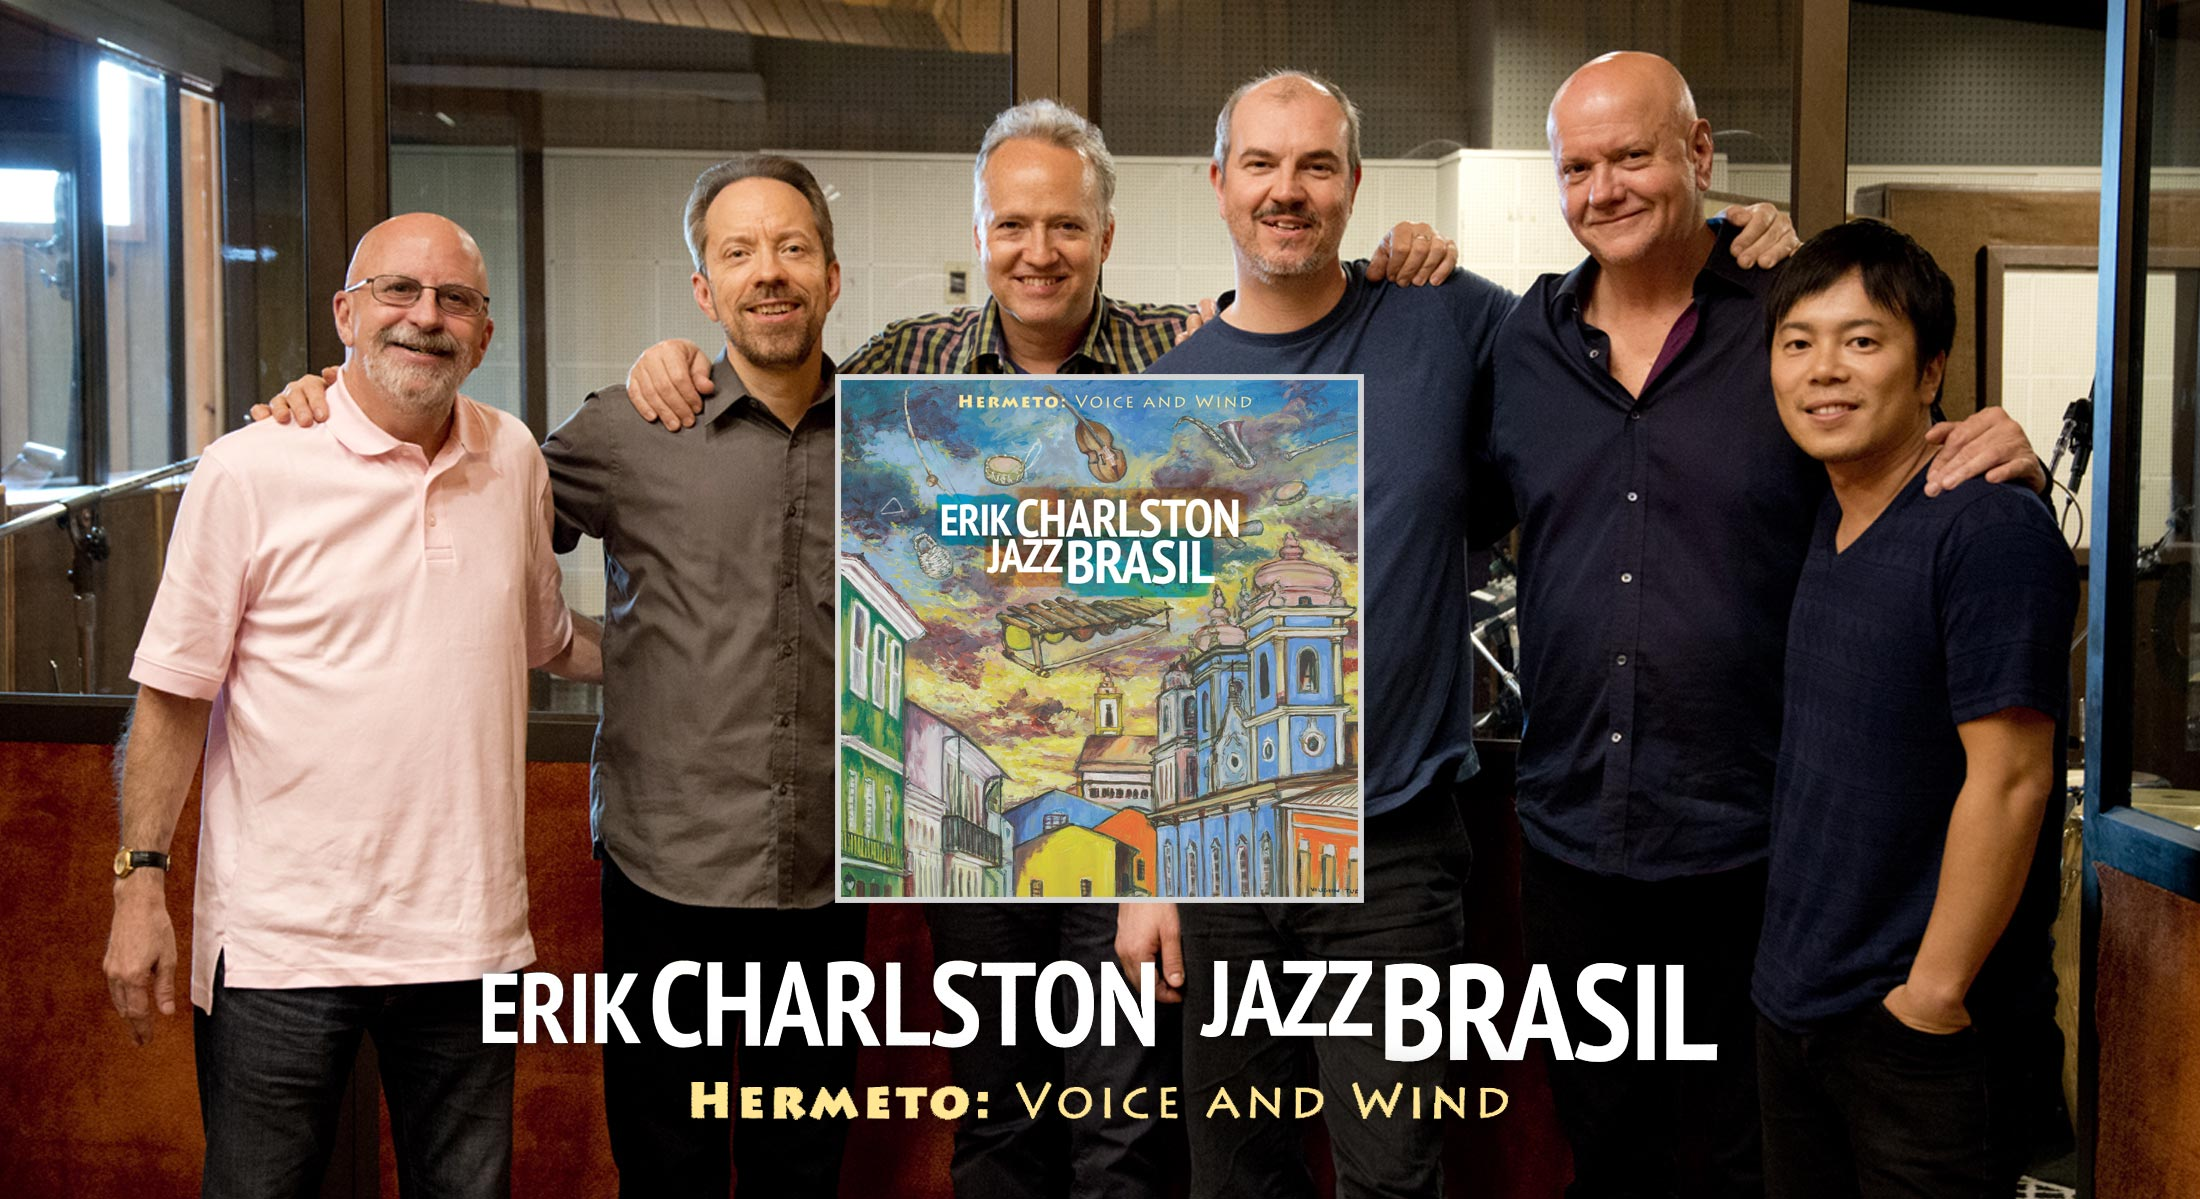 Erik Charlston - JazzBrasil - Voice And Wind